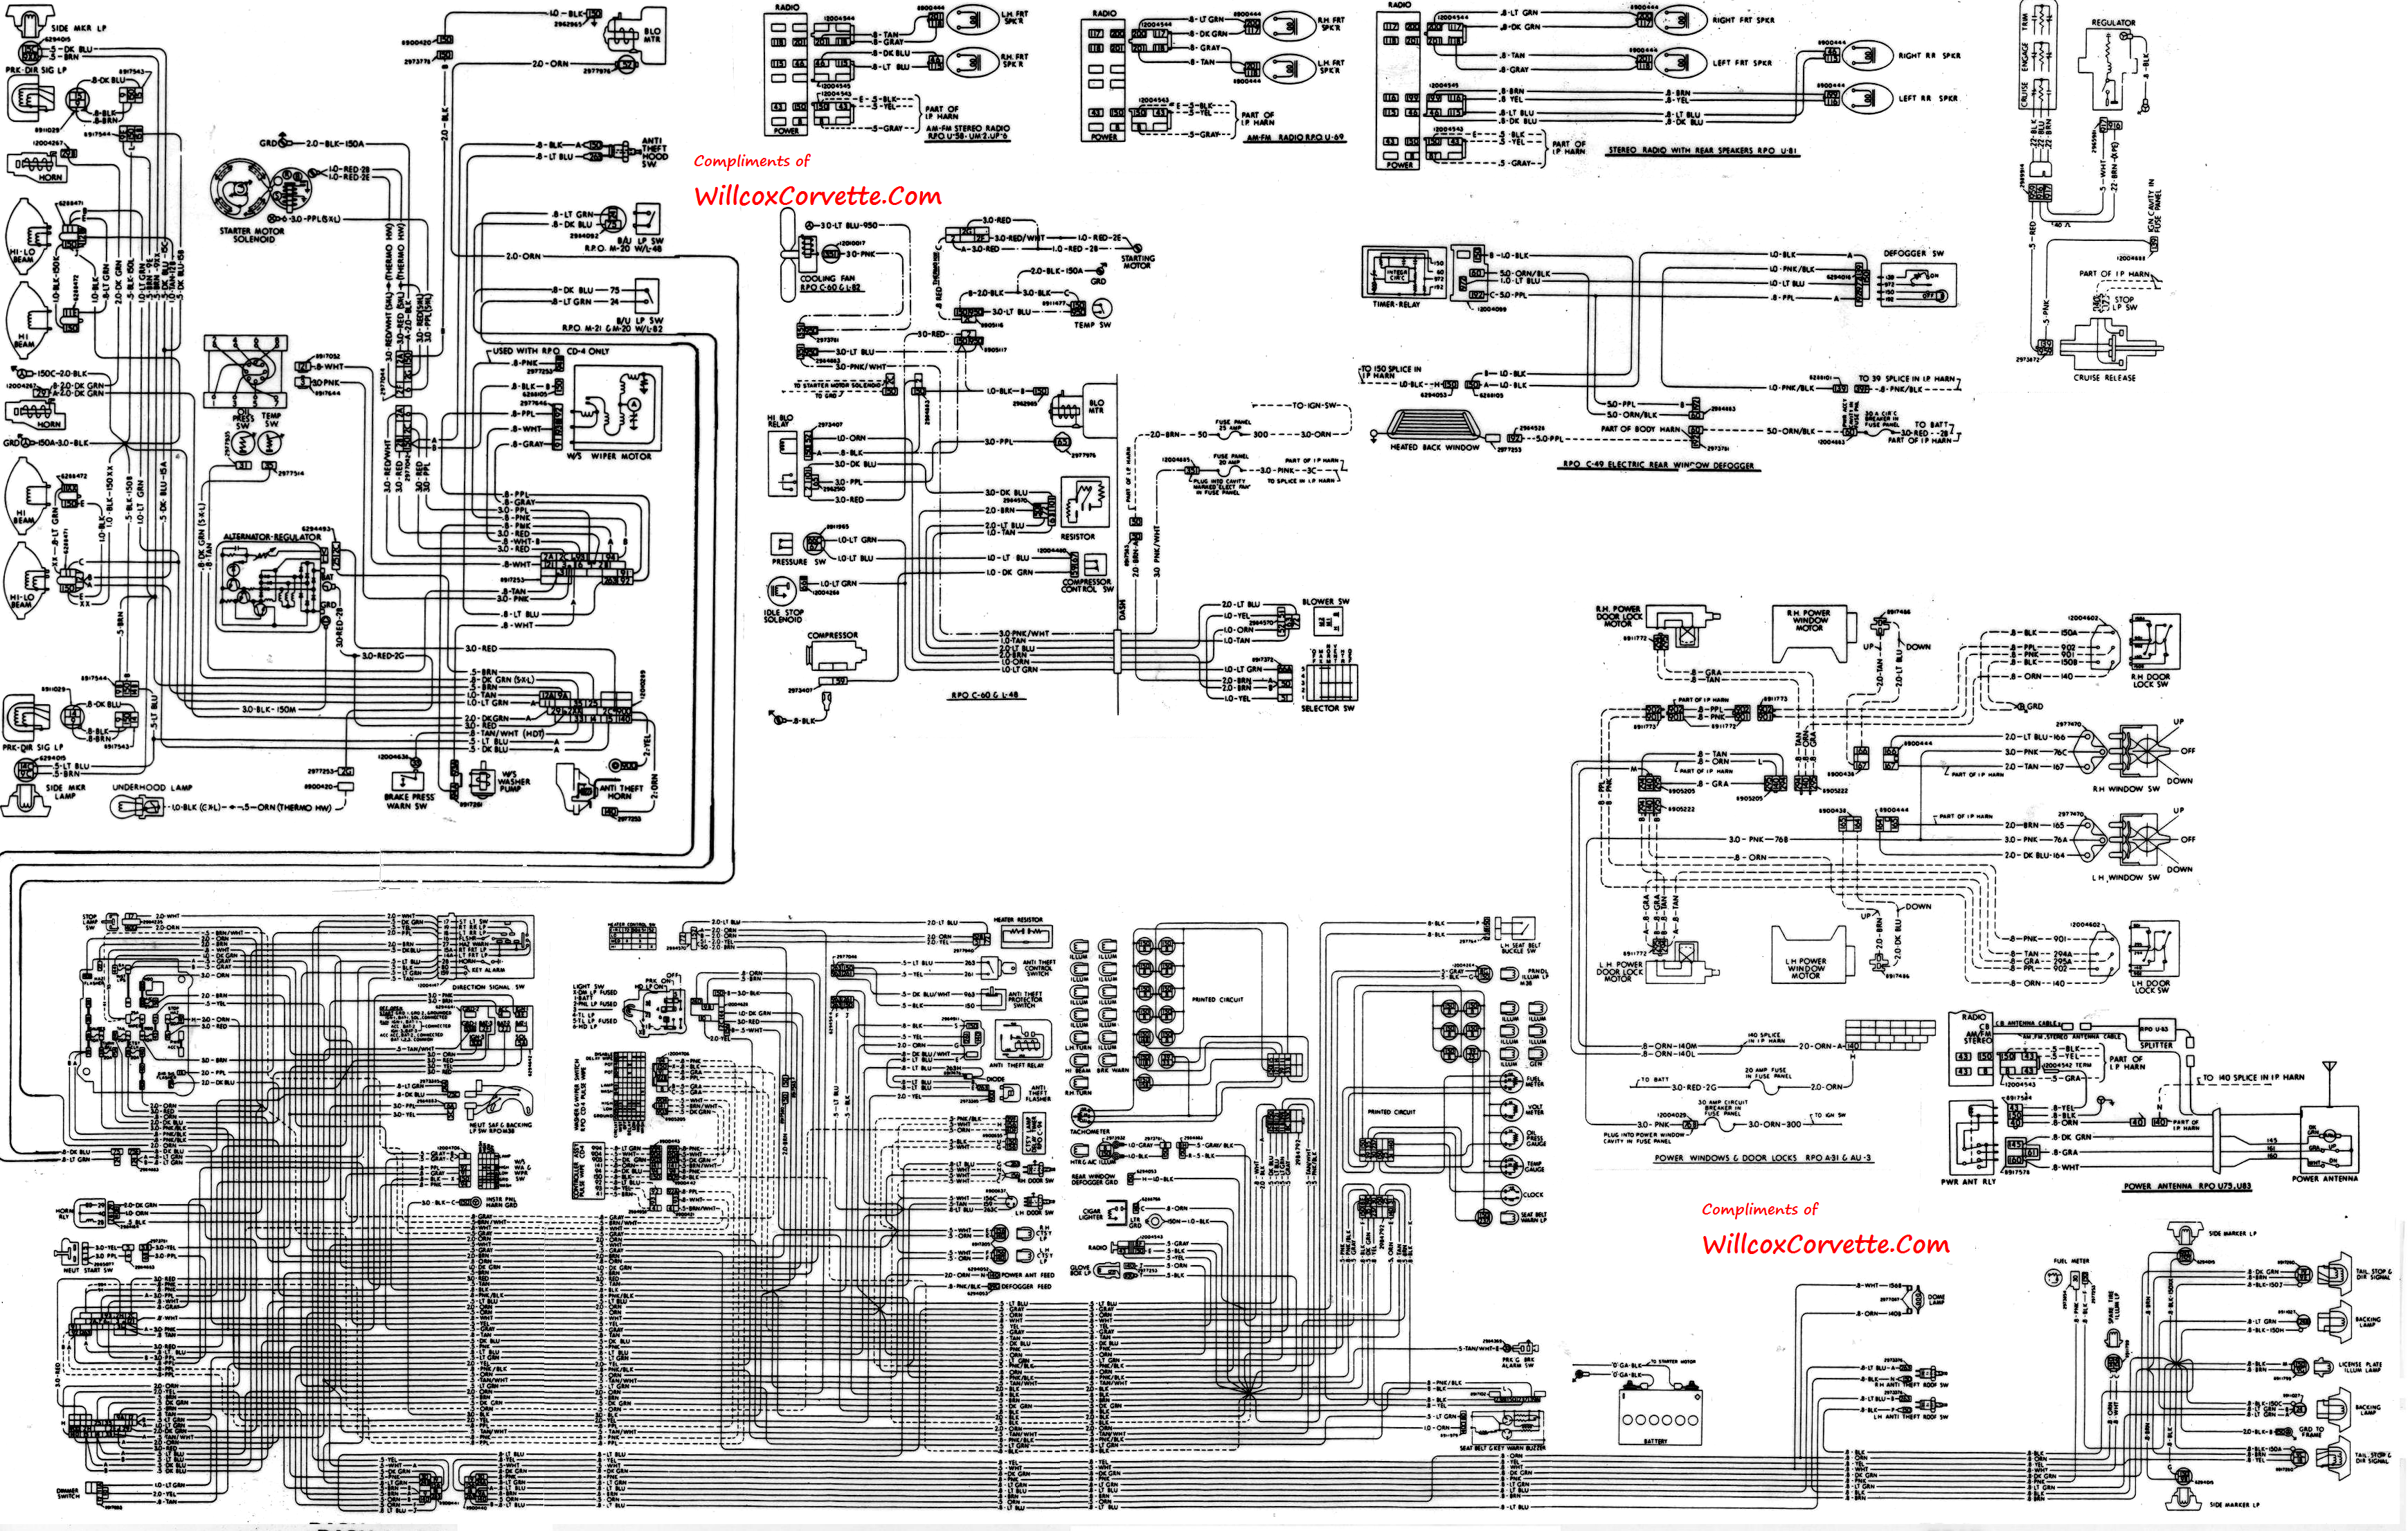 1979 wire diagram 1978 corvette wiring diagram pdf 1980 el camino wiring diagram 1998 corvette wiring diagram at readyjetset.co